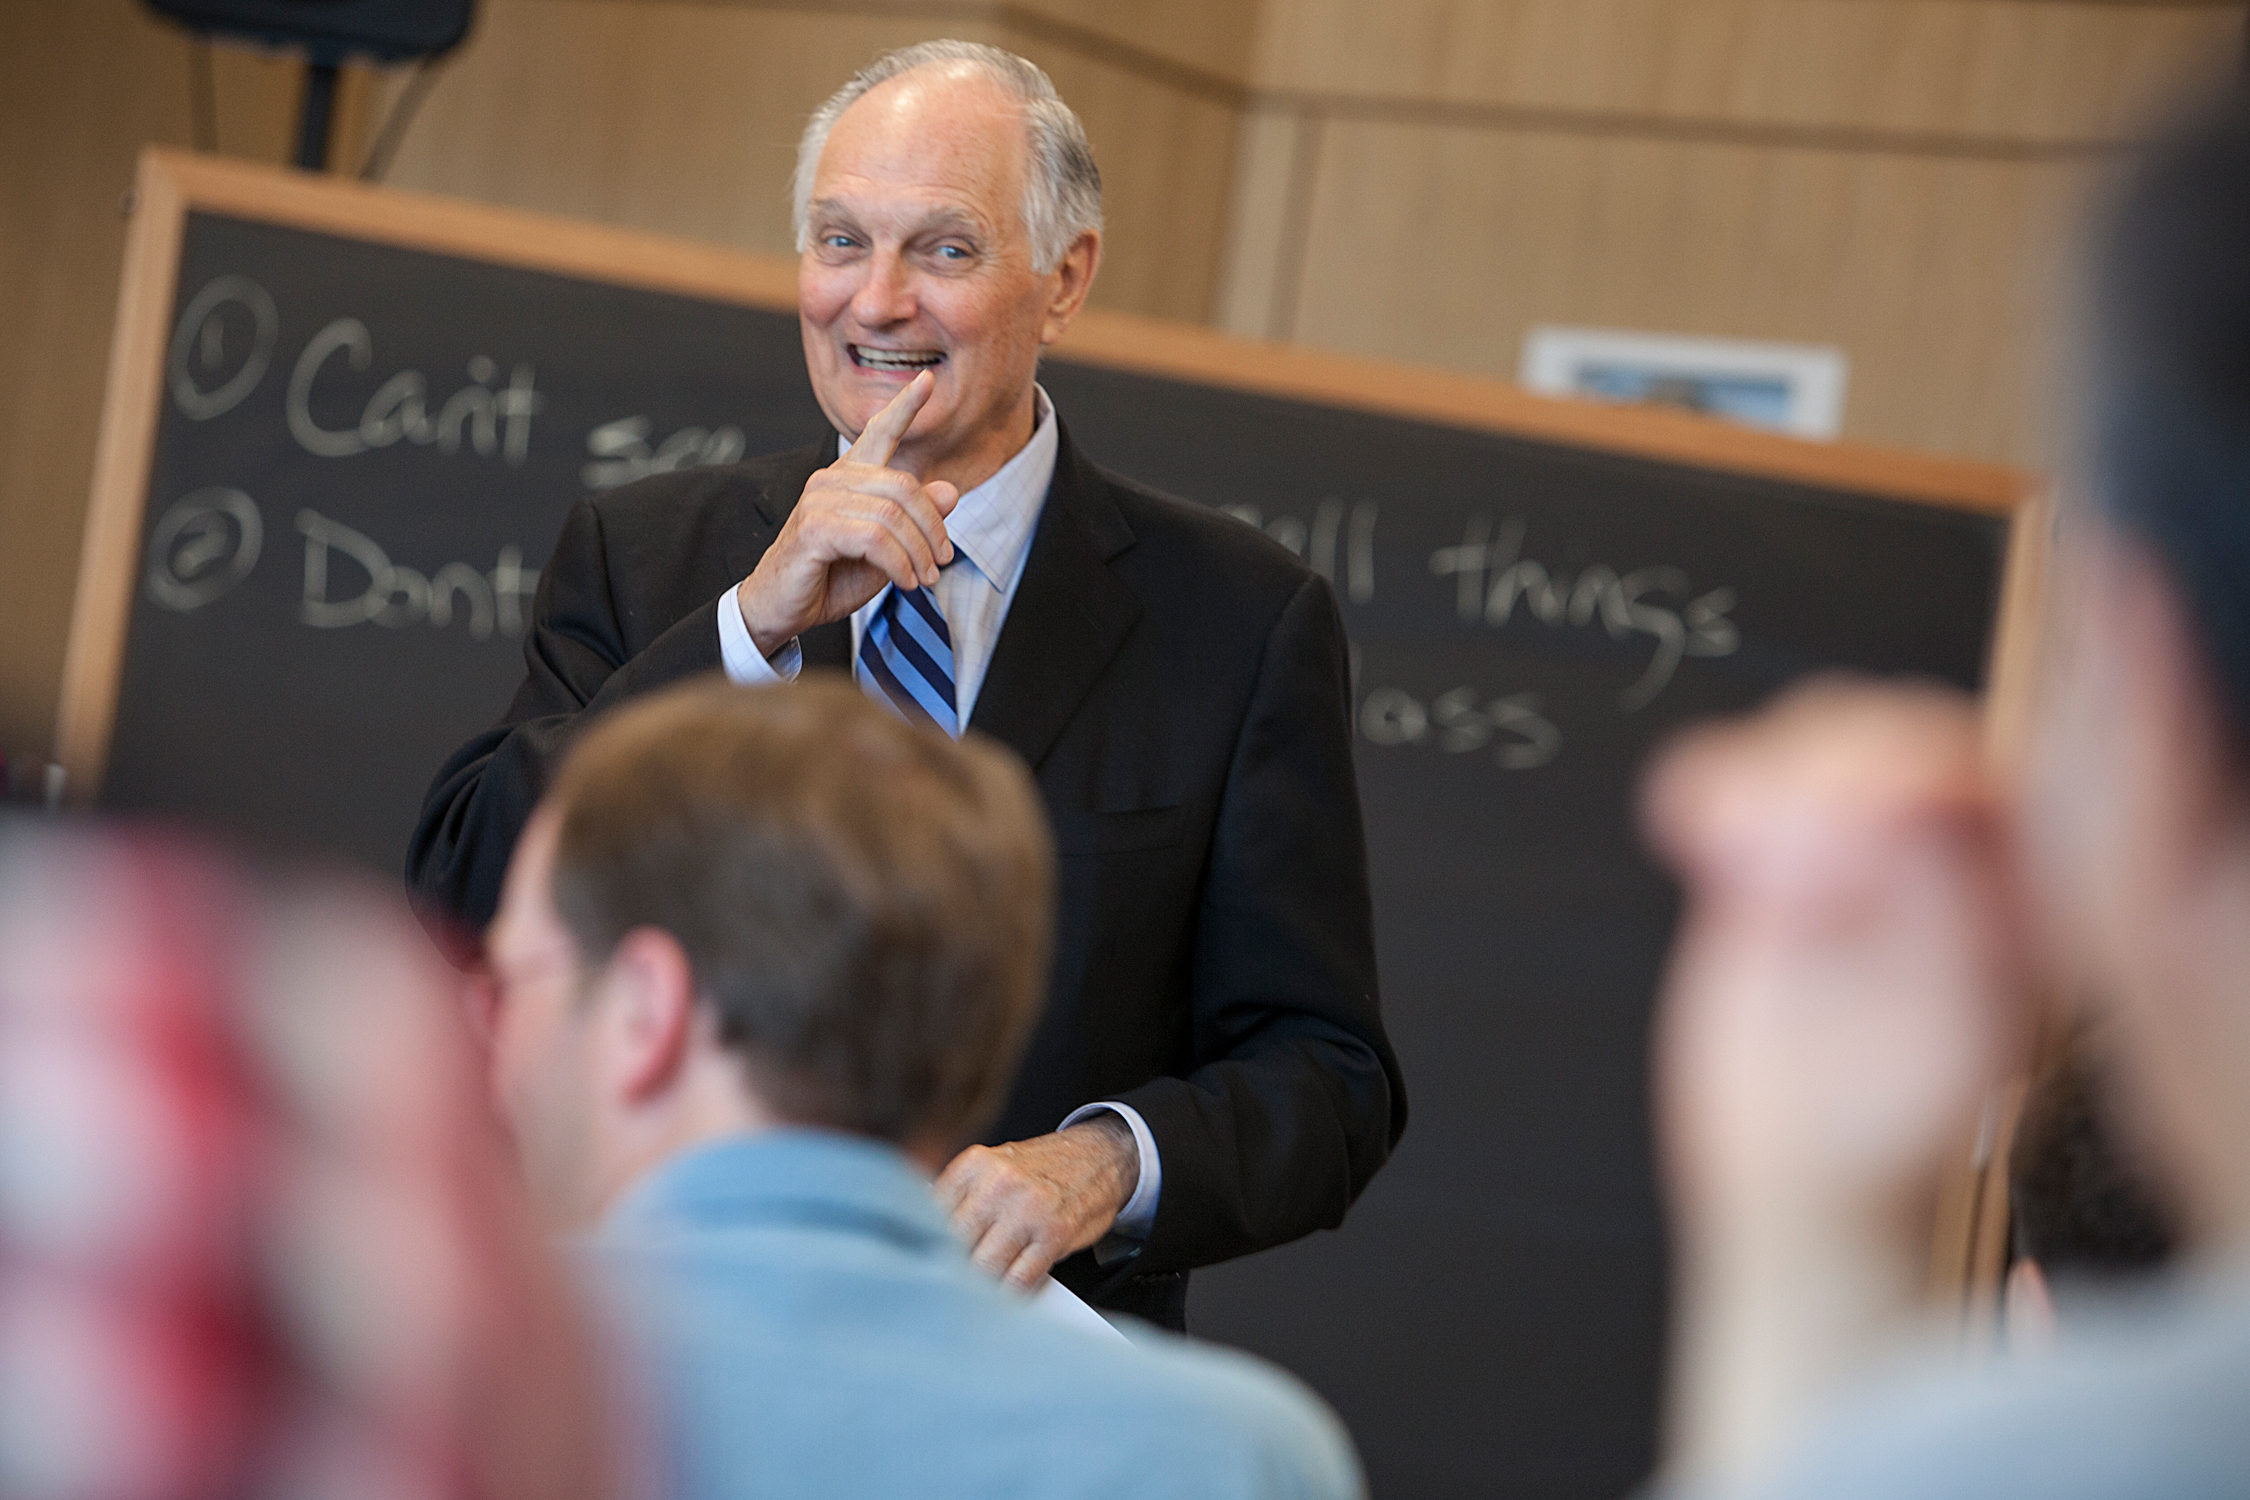 Alan Alda talks to scientists about effective communication during a workshop at Cornell University on May 22, 2014.